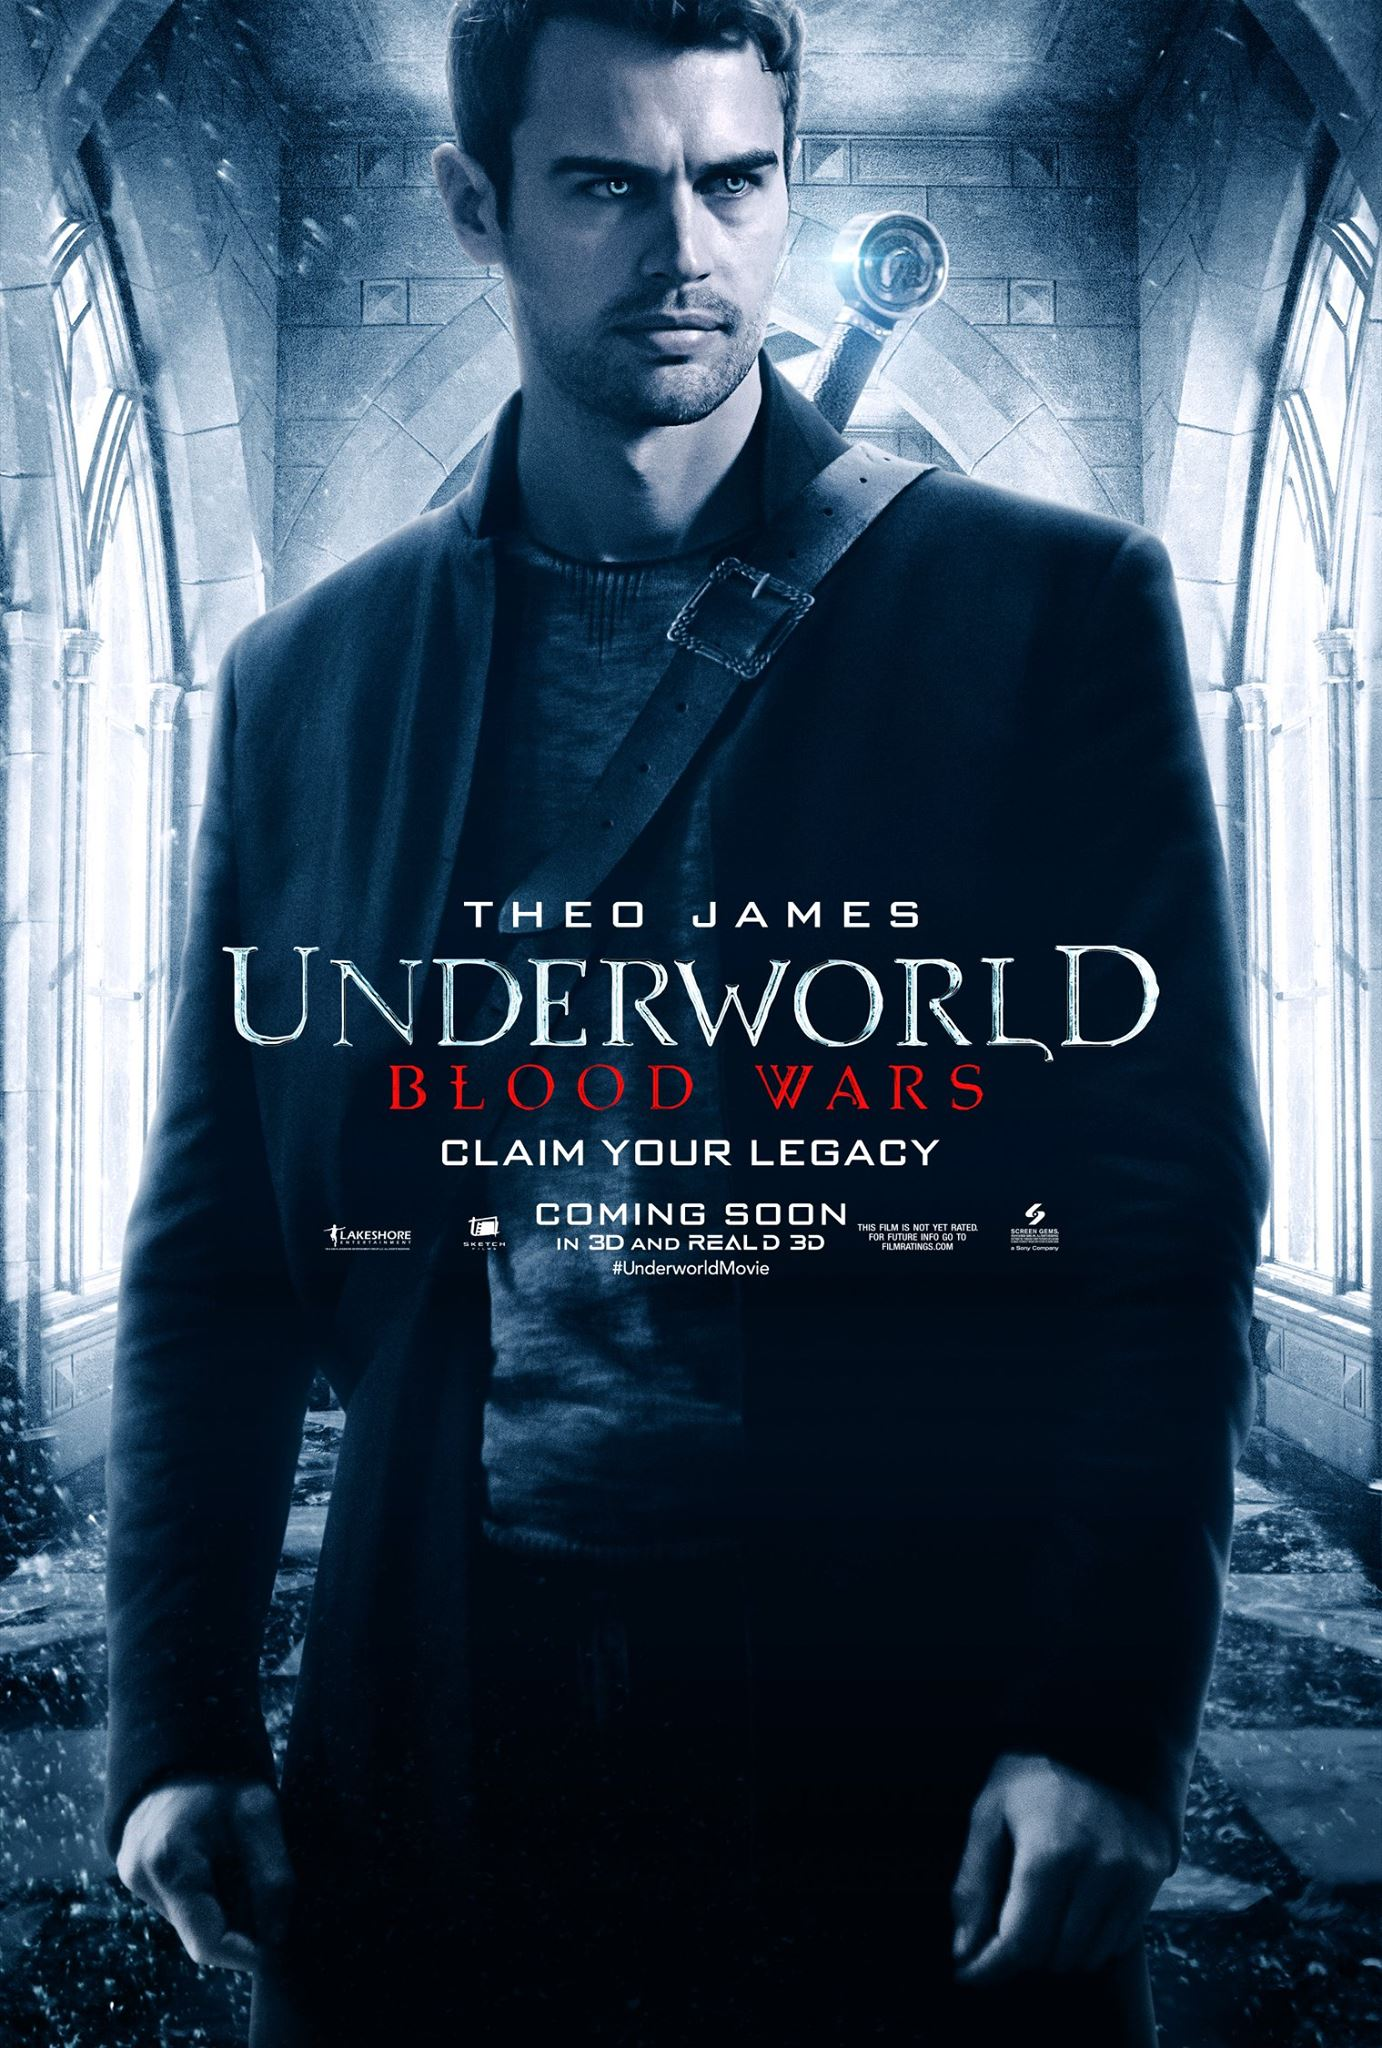 Underworld Unleashed « The Wheel and Axle